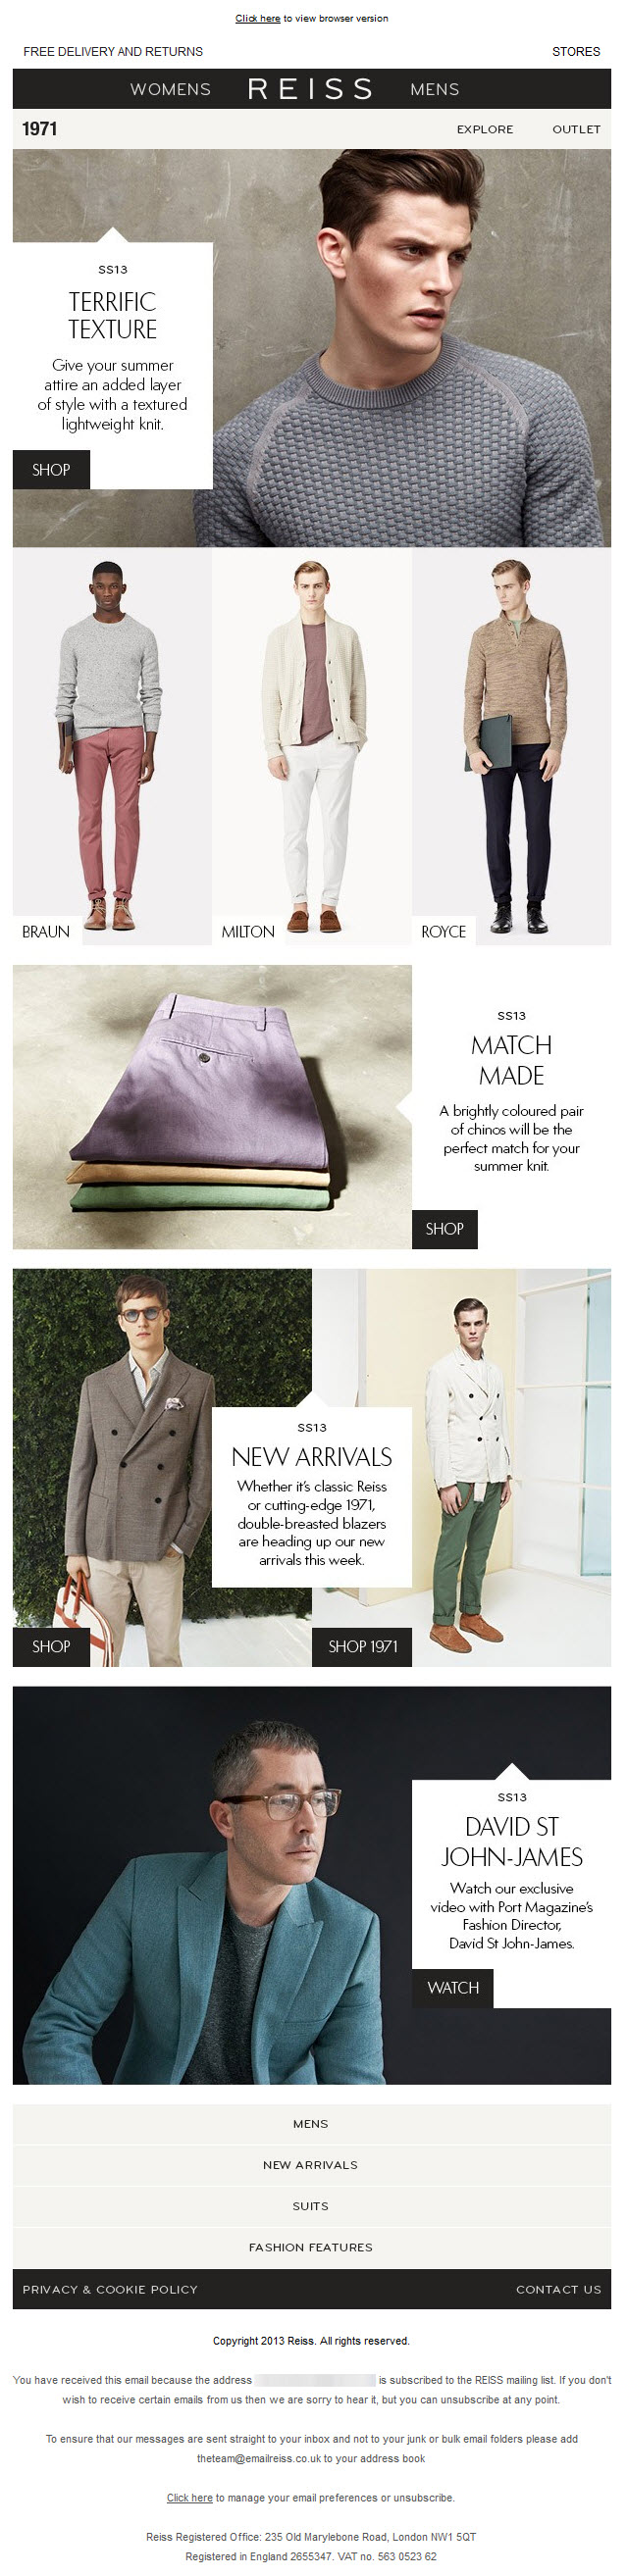 View this Reiss email on Pinterest >>